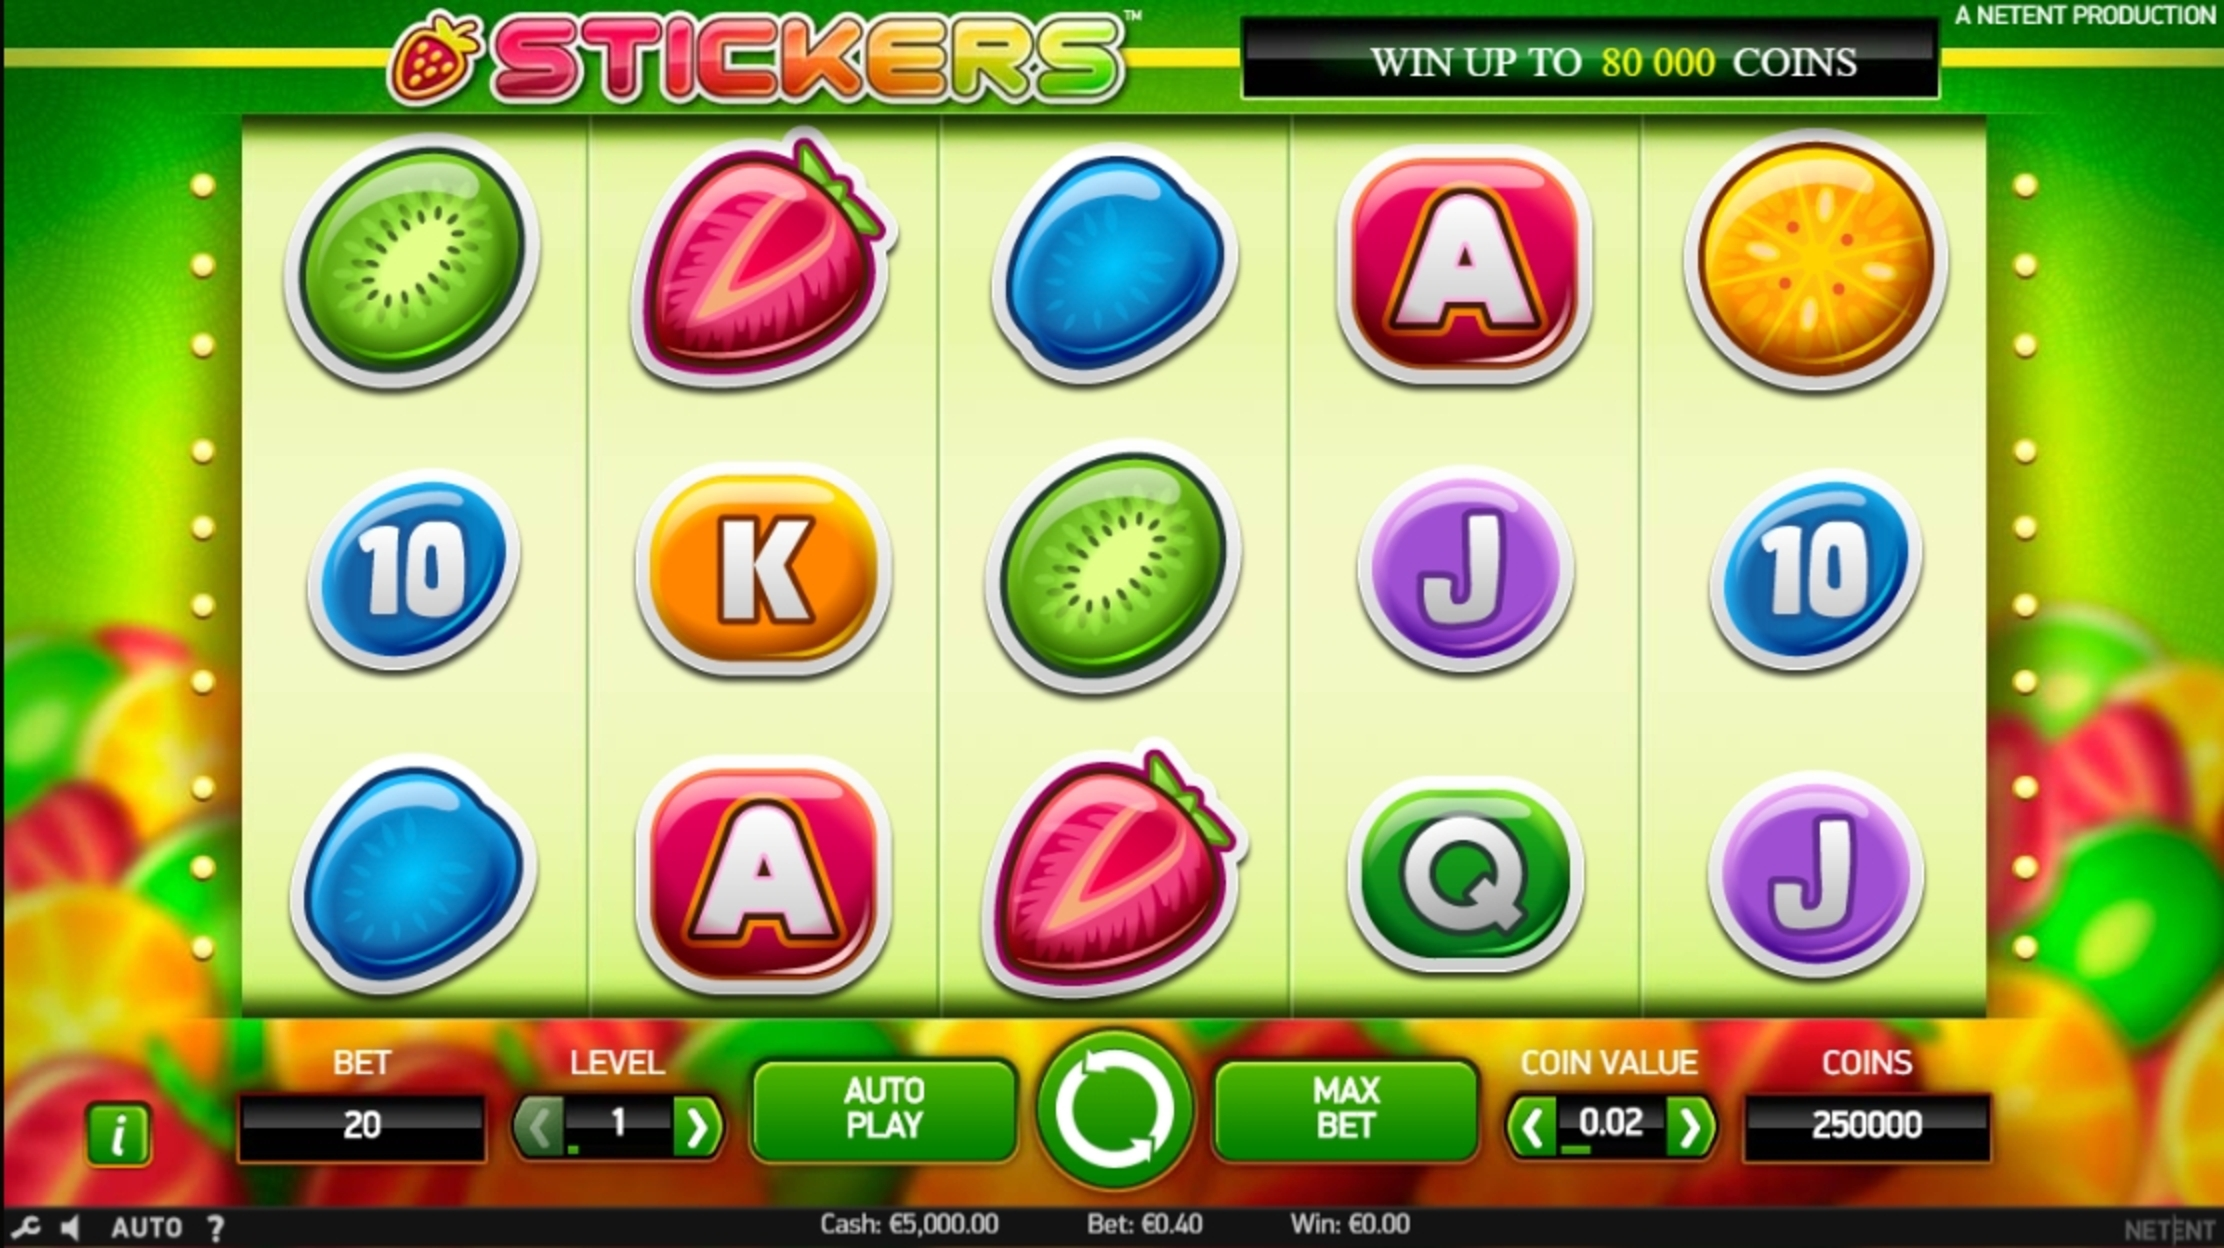 Reels in Stickers Slot Game by NetEnt